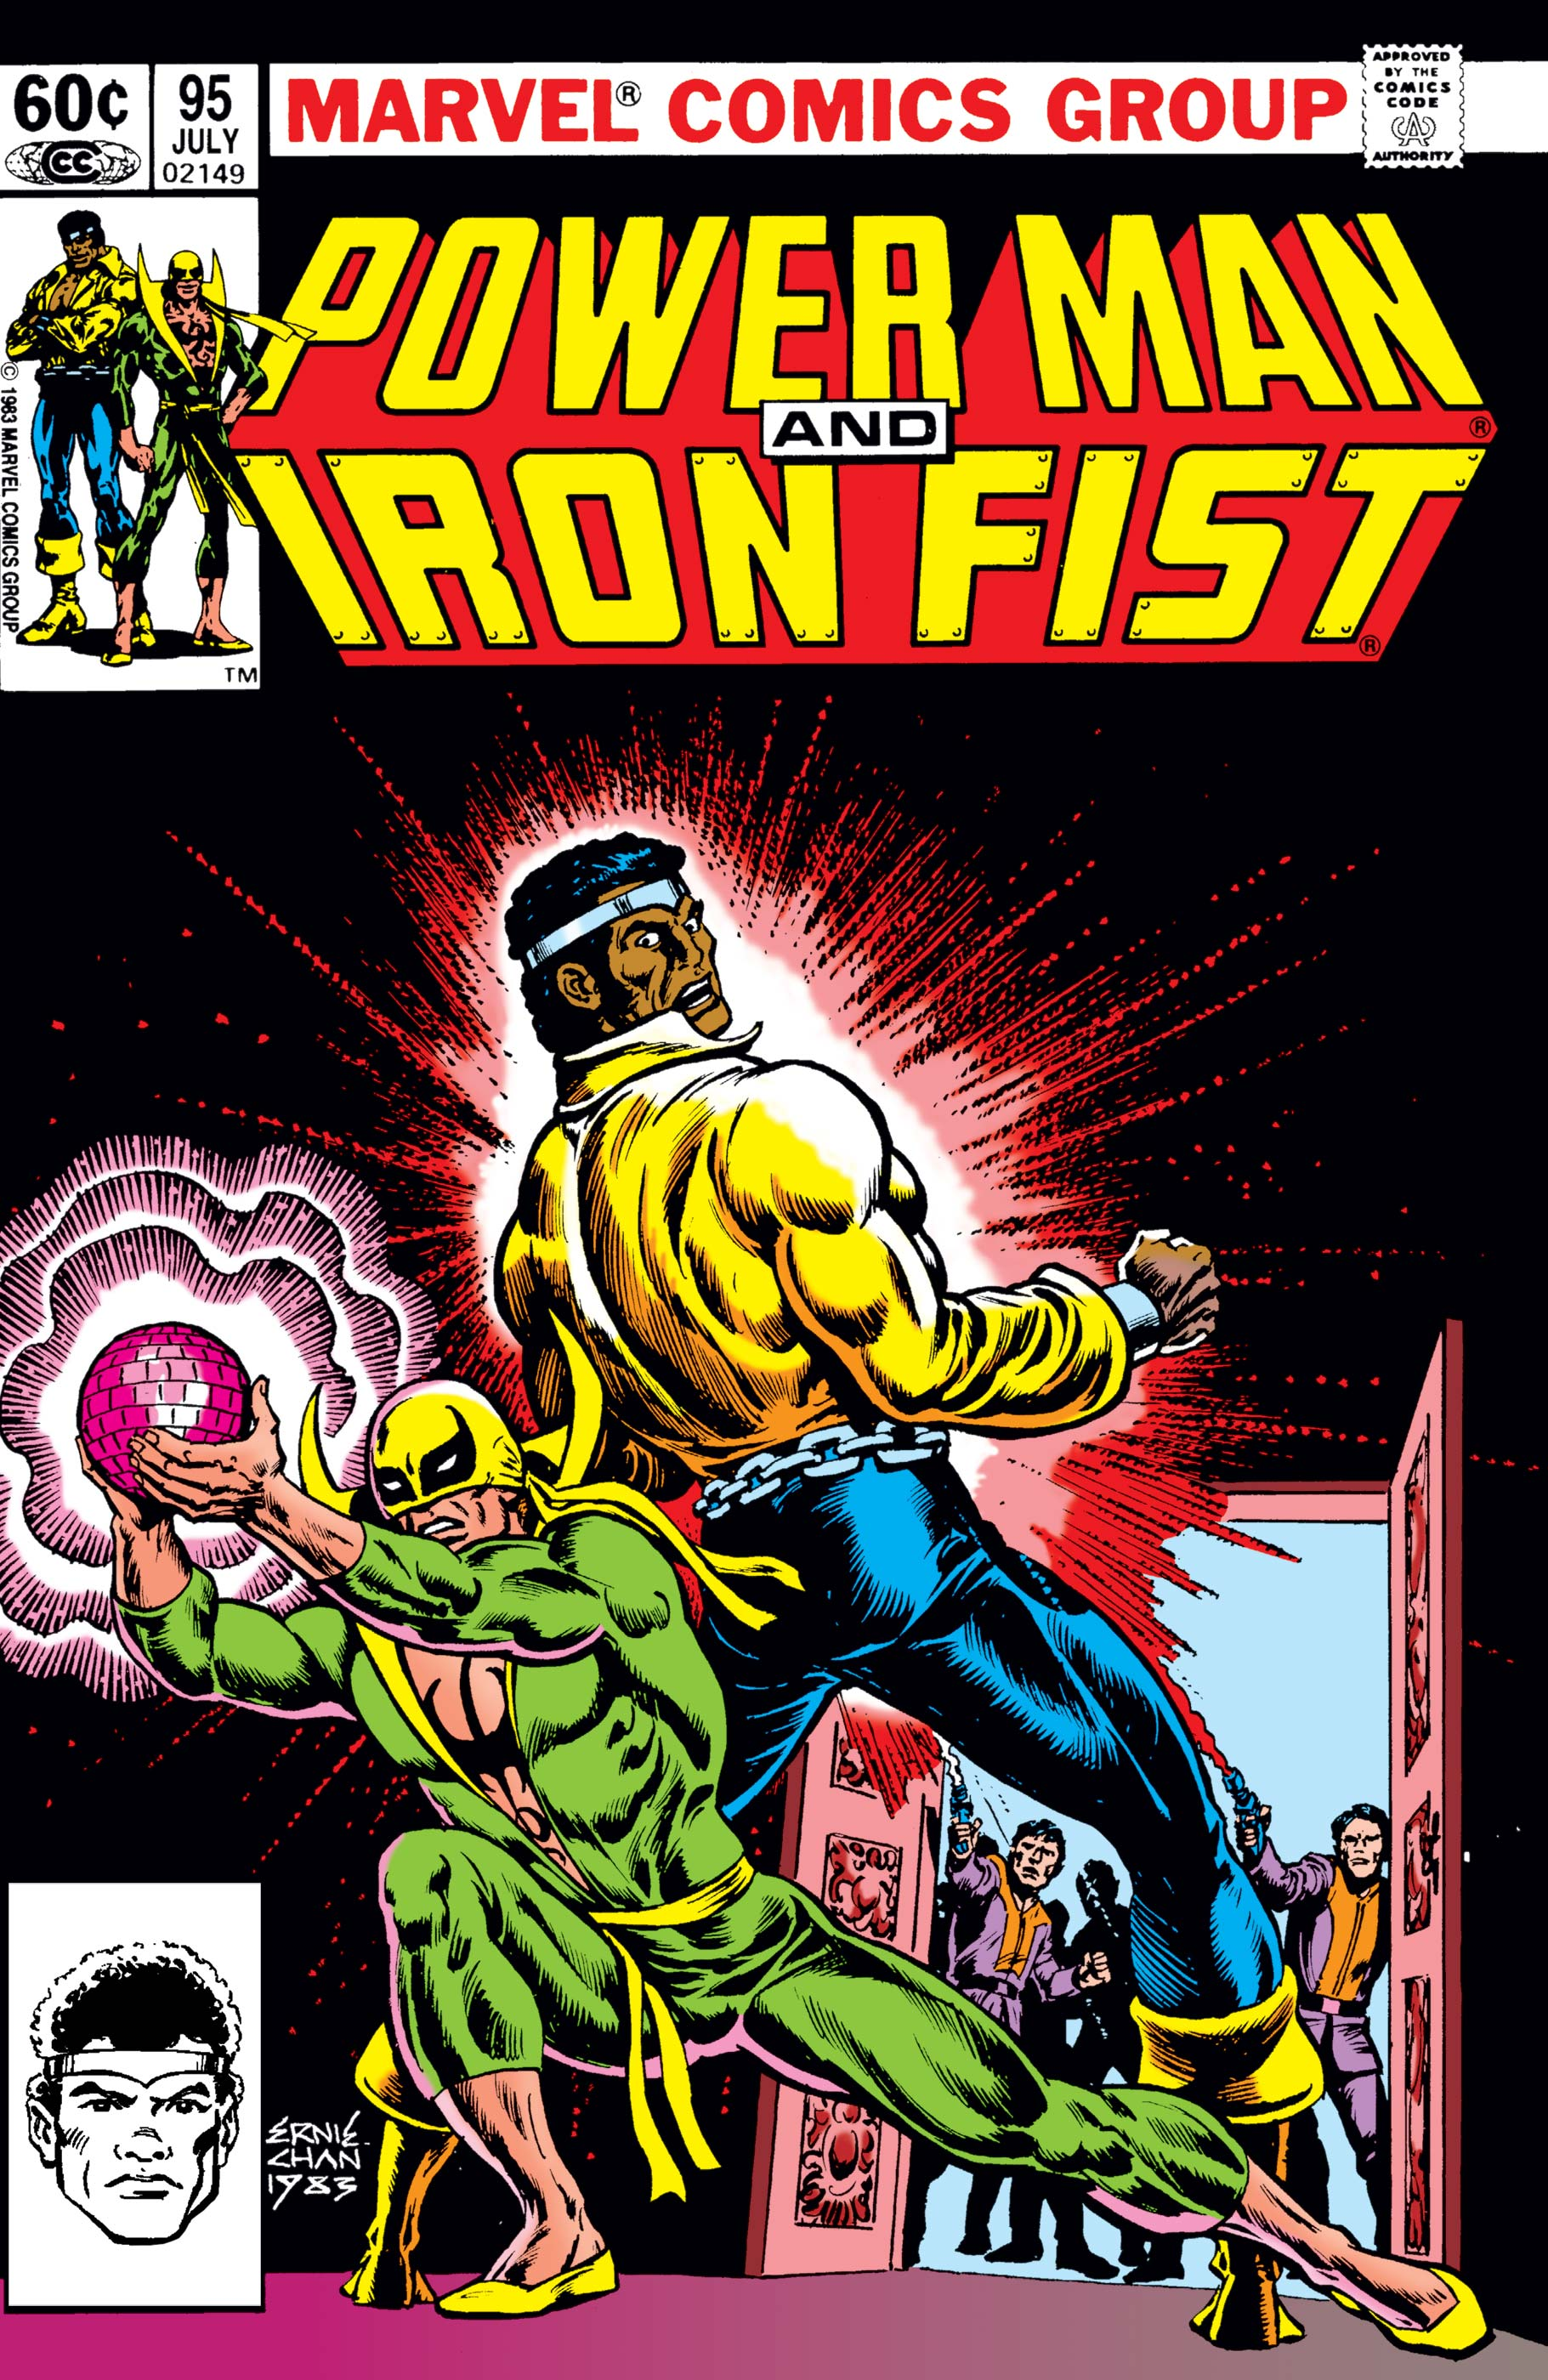 Power Man and Iron Fist (1978) #95